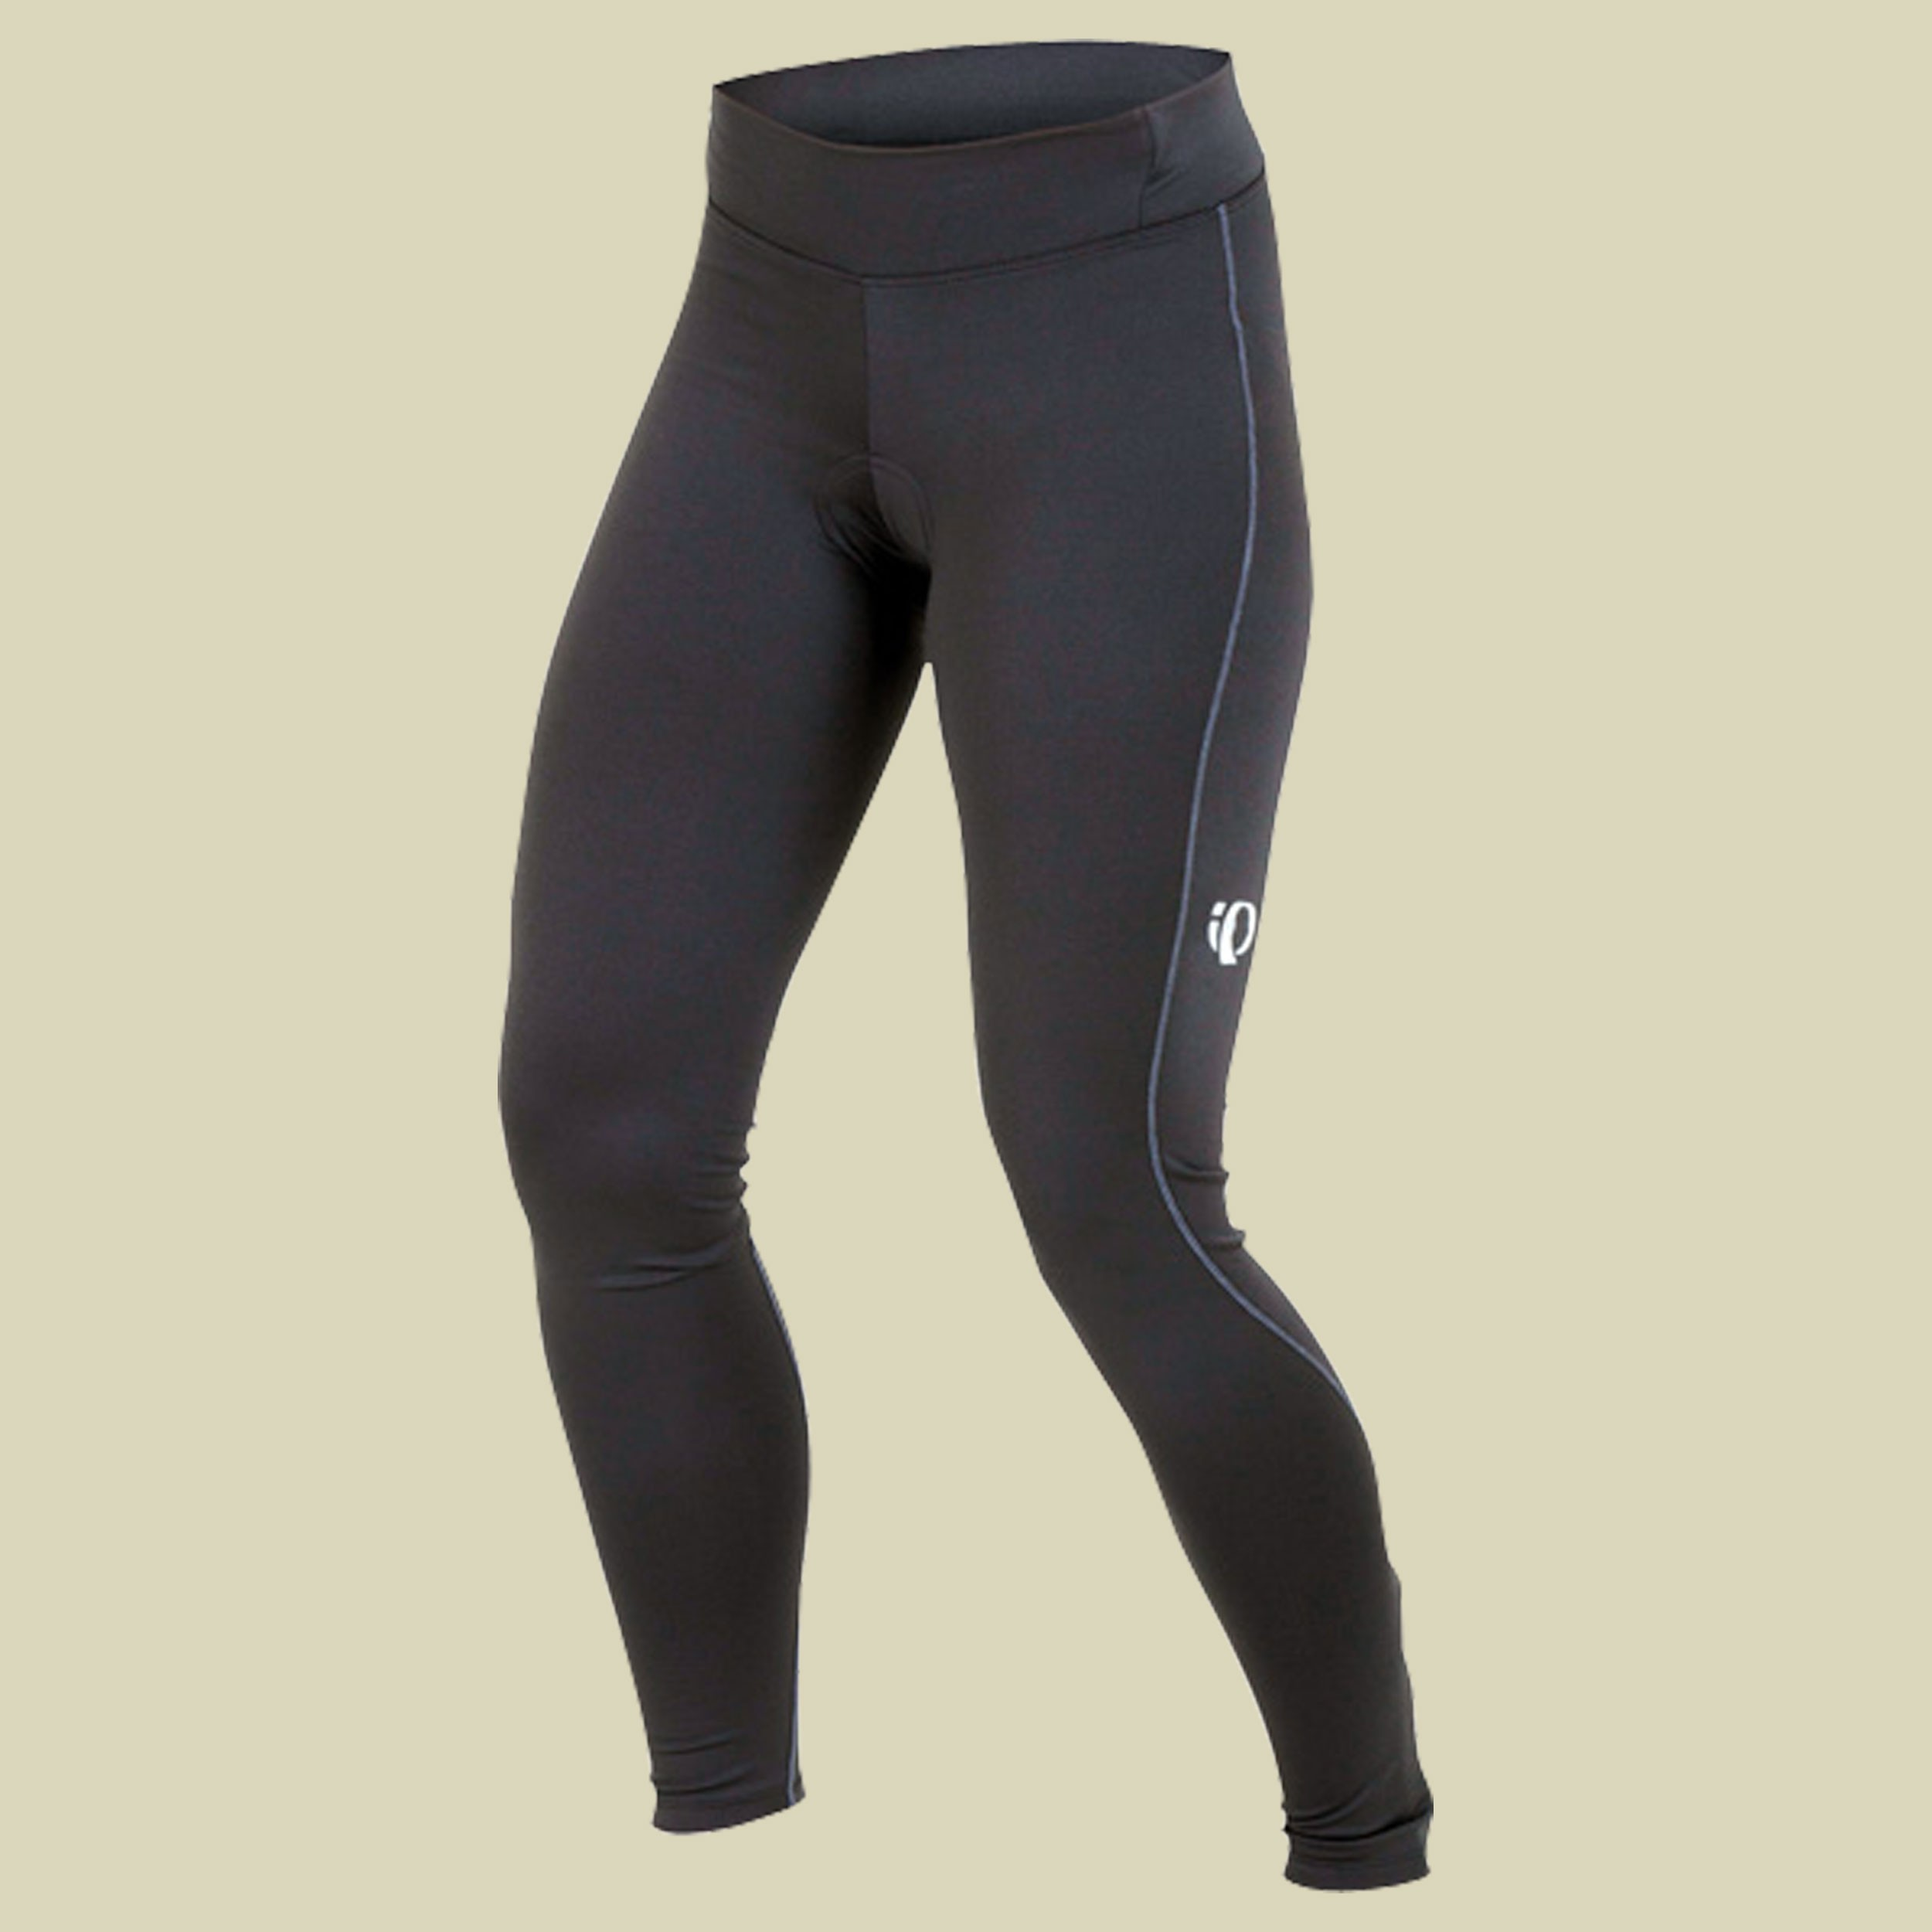 W Sugar Thermal Cycling Tight